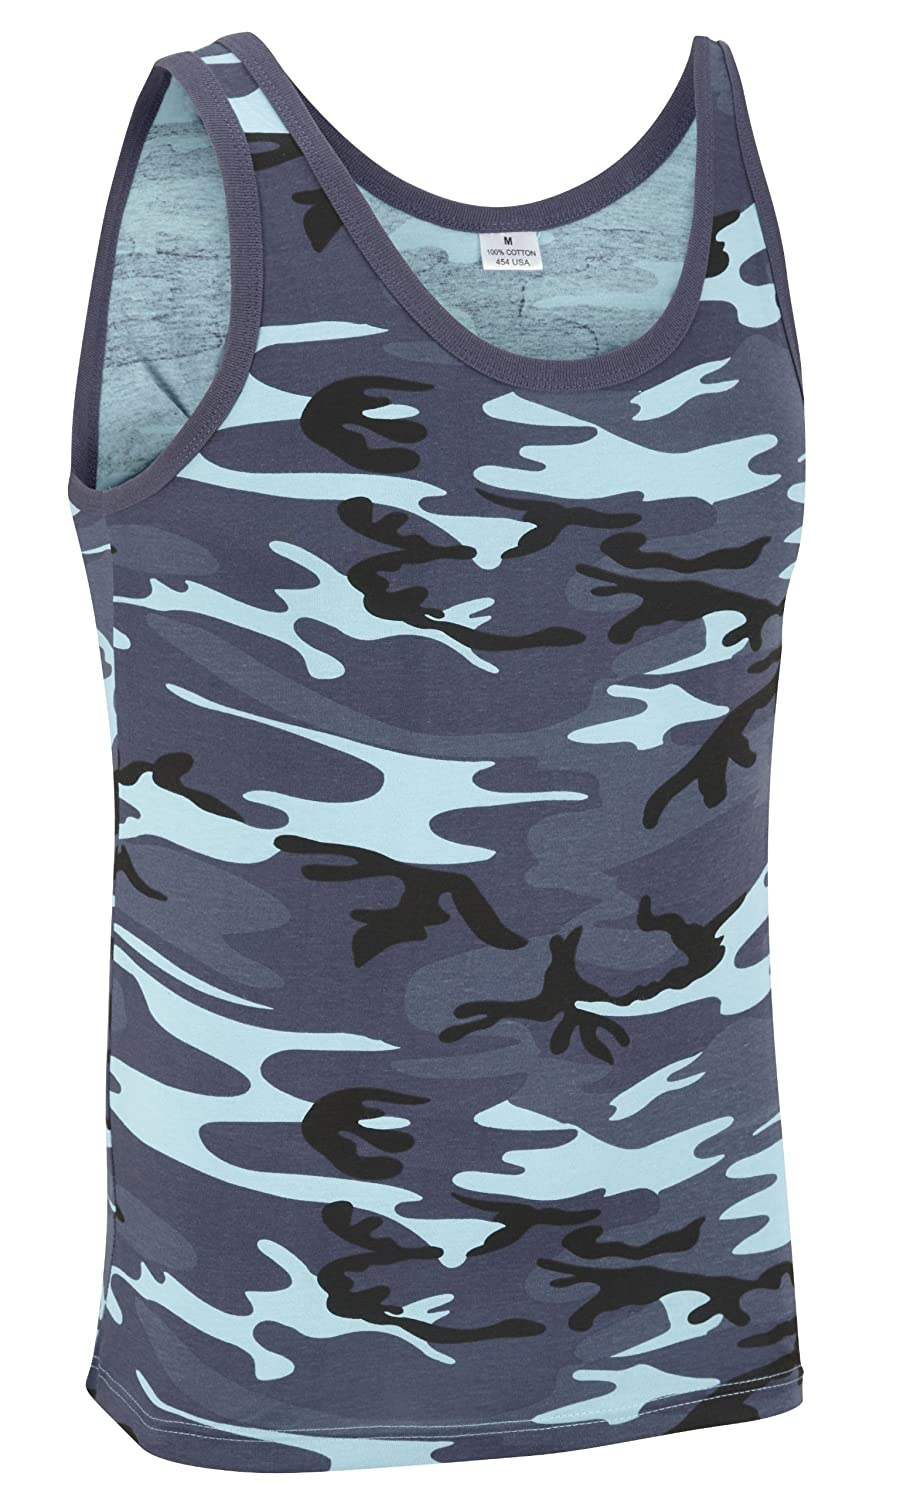 Camouflage Military Vest Top - Midnight Camouflage